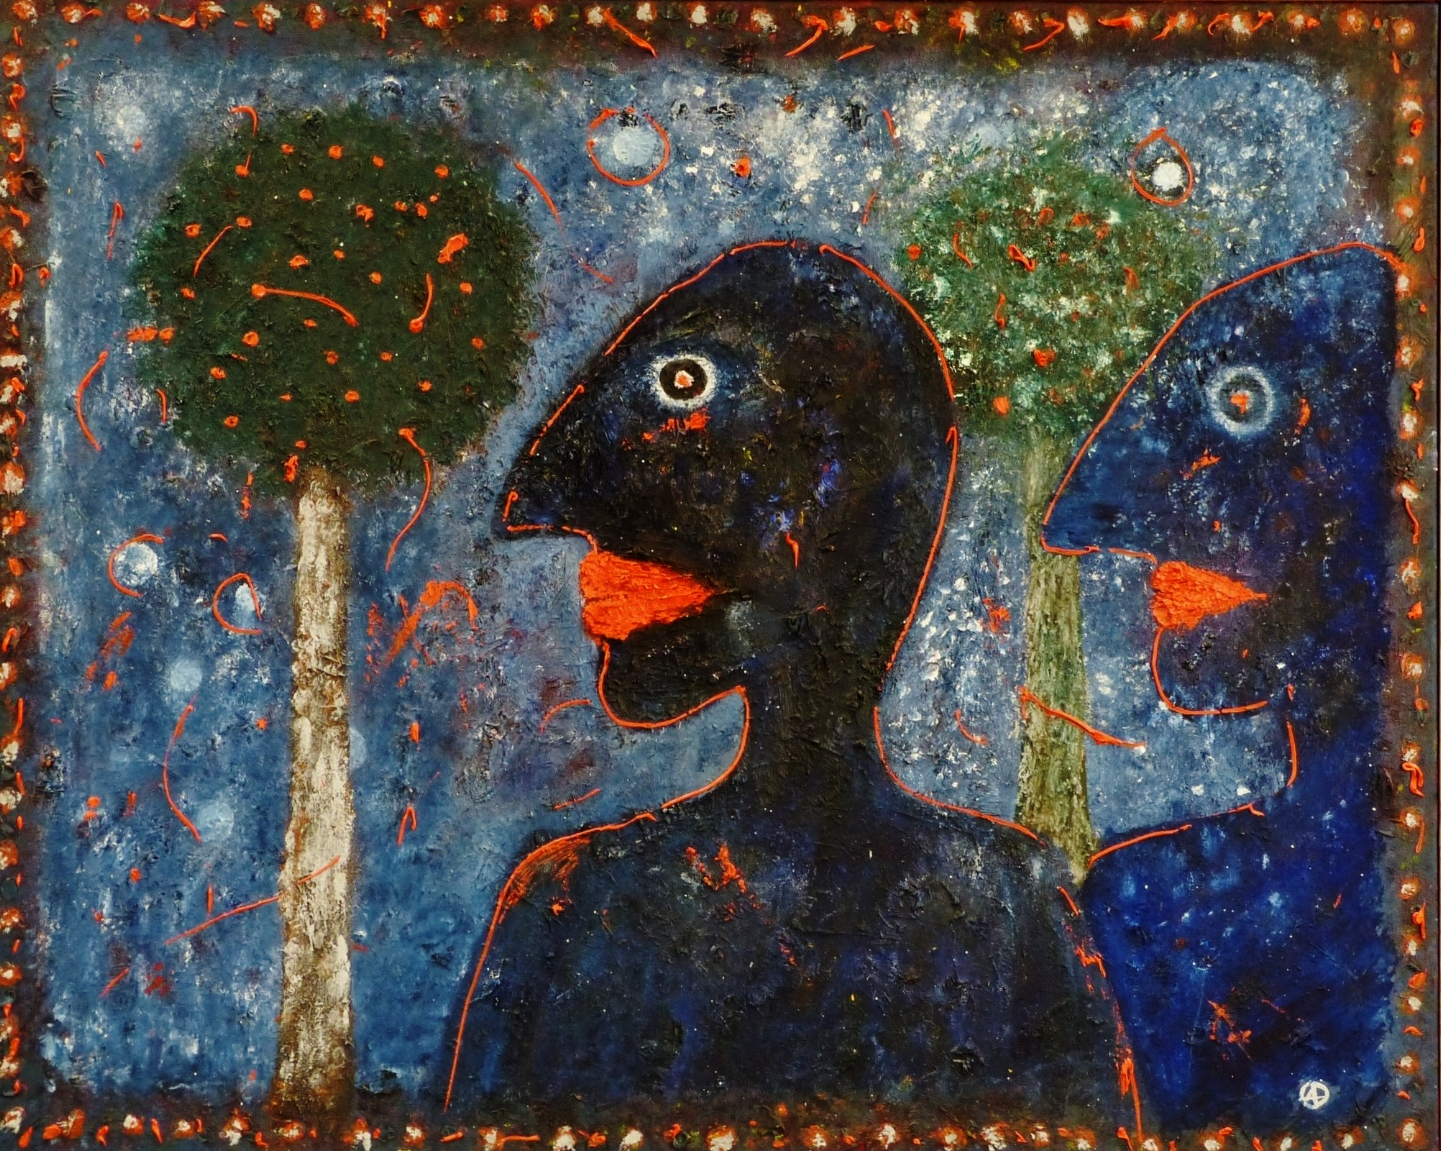 RETURN TO THE GARDEN - 2001